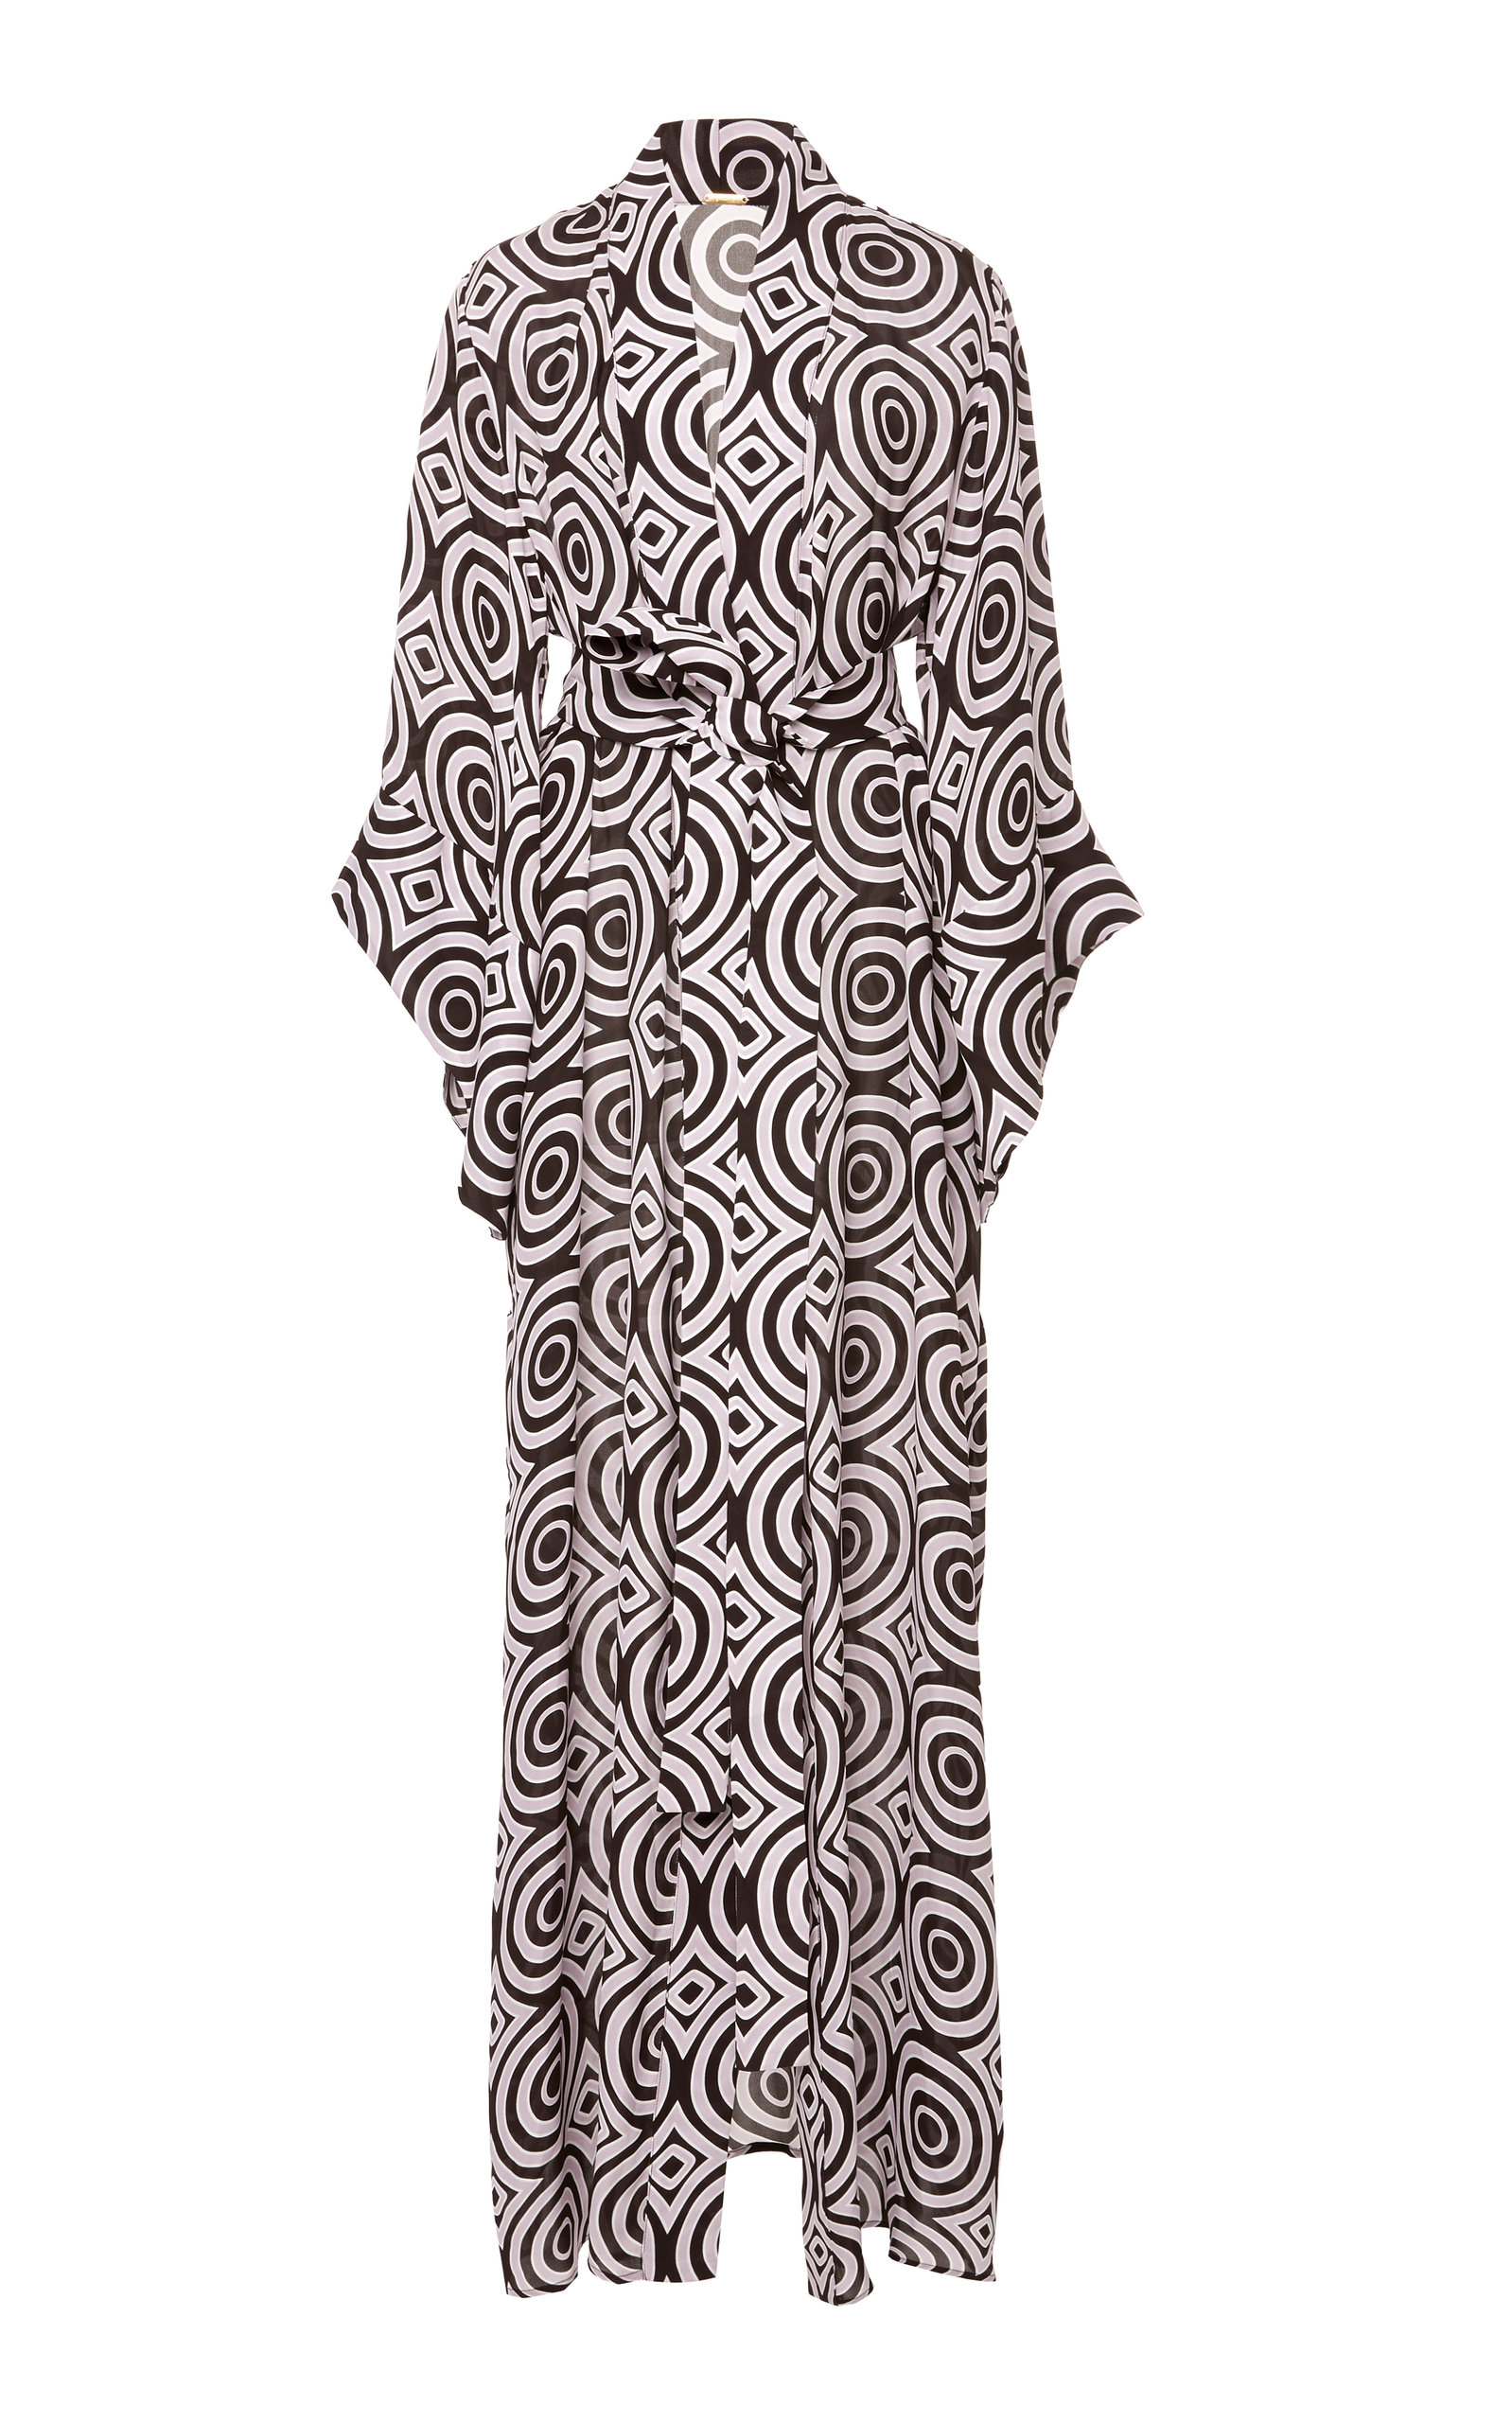 MO Exclusive British Circus Georgette Kimono Johanna Ortiz Lowest Price Online Collections Online Latest Collections Wfp4LG